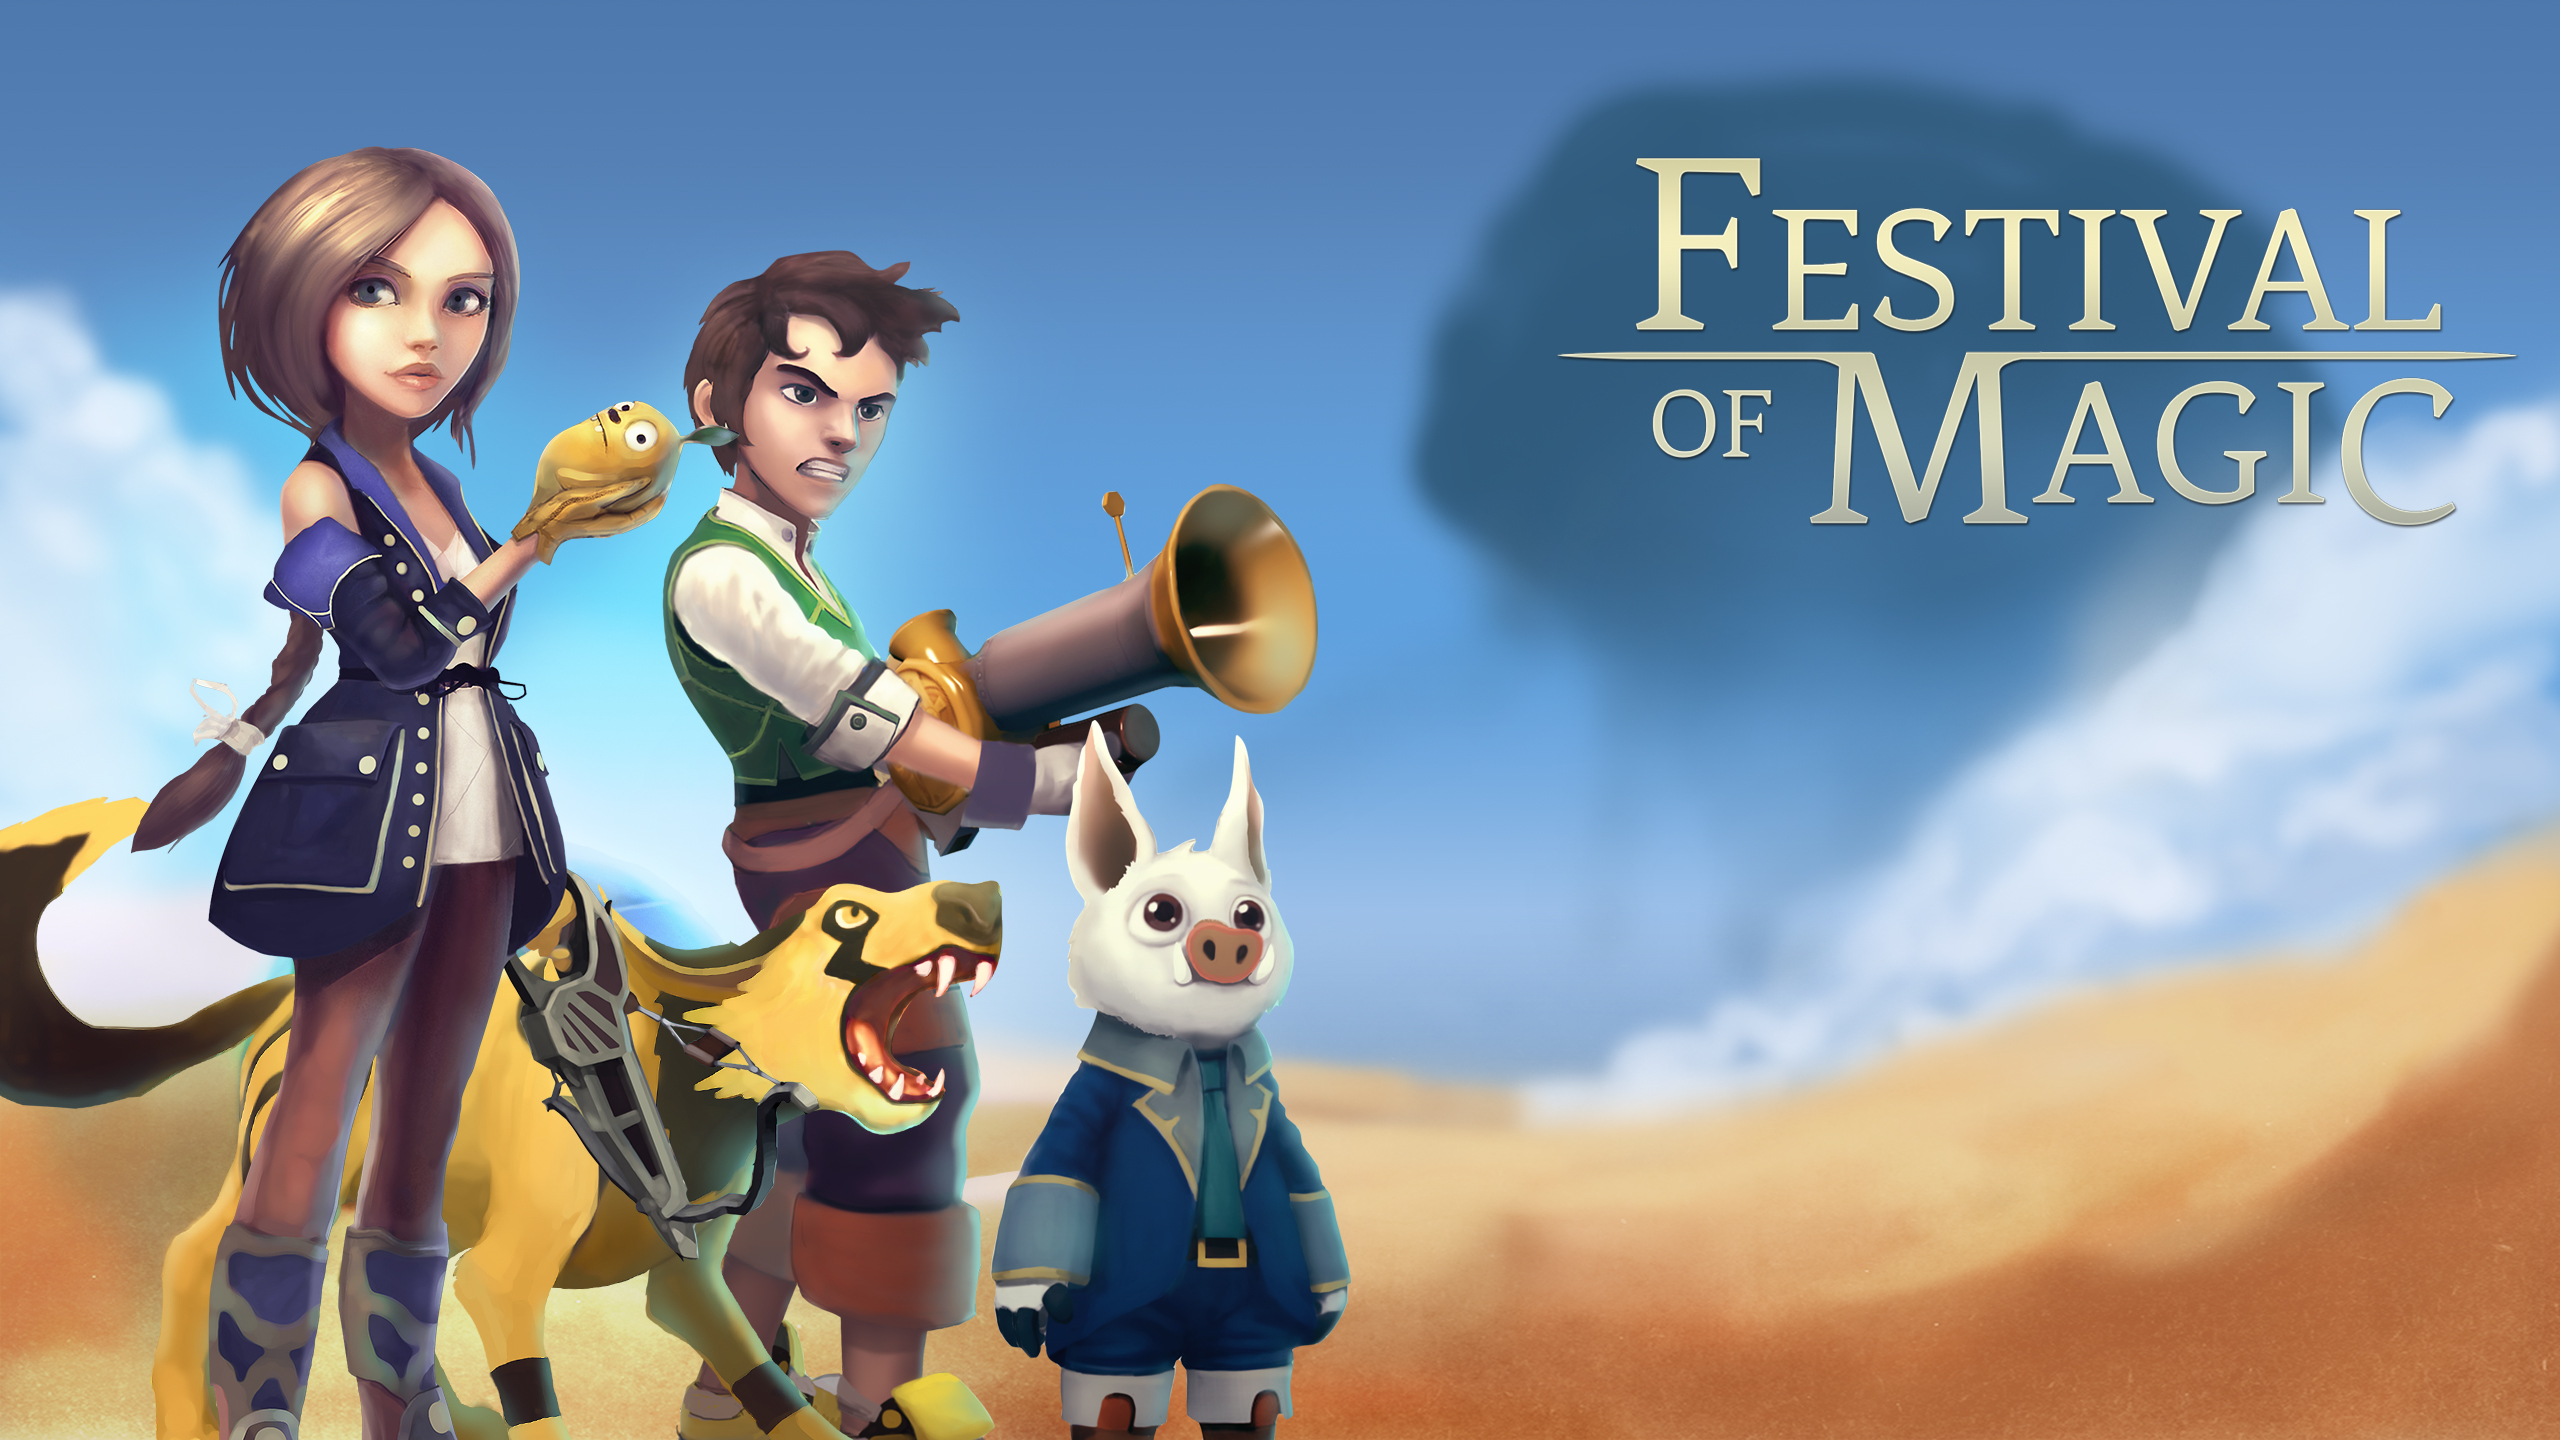 Bringing earthlock festival of magic to the xbox one at the same time